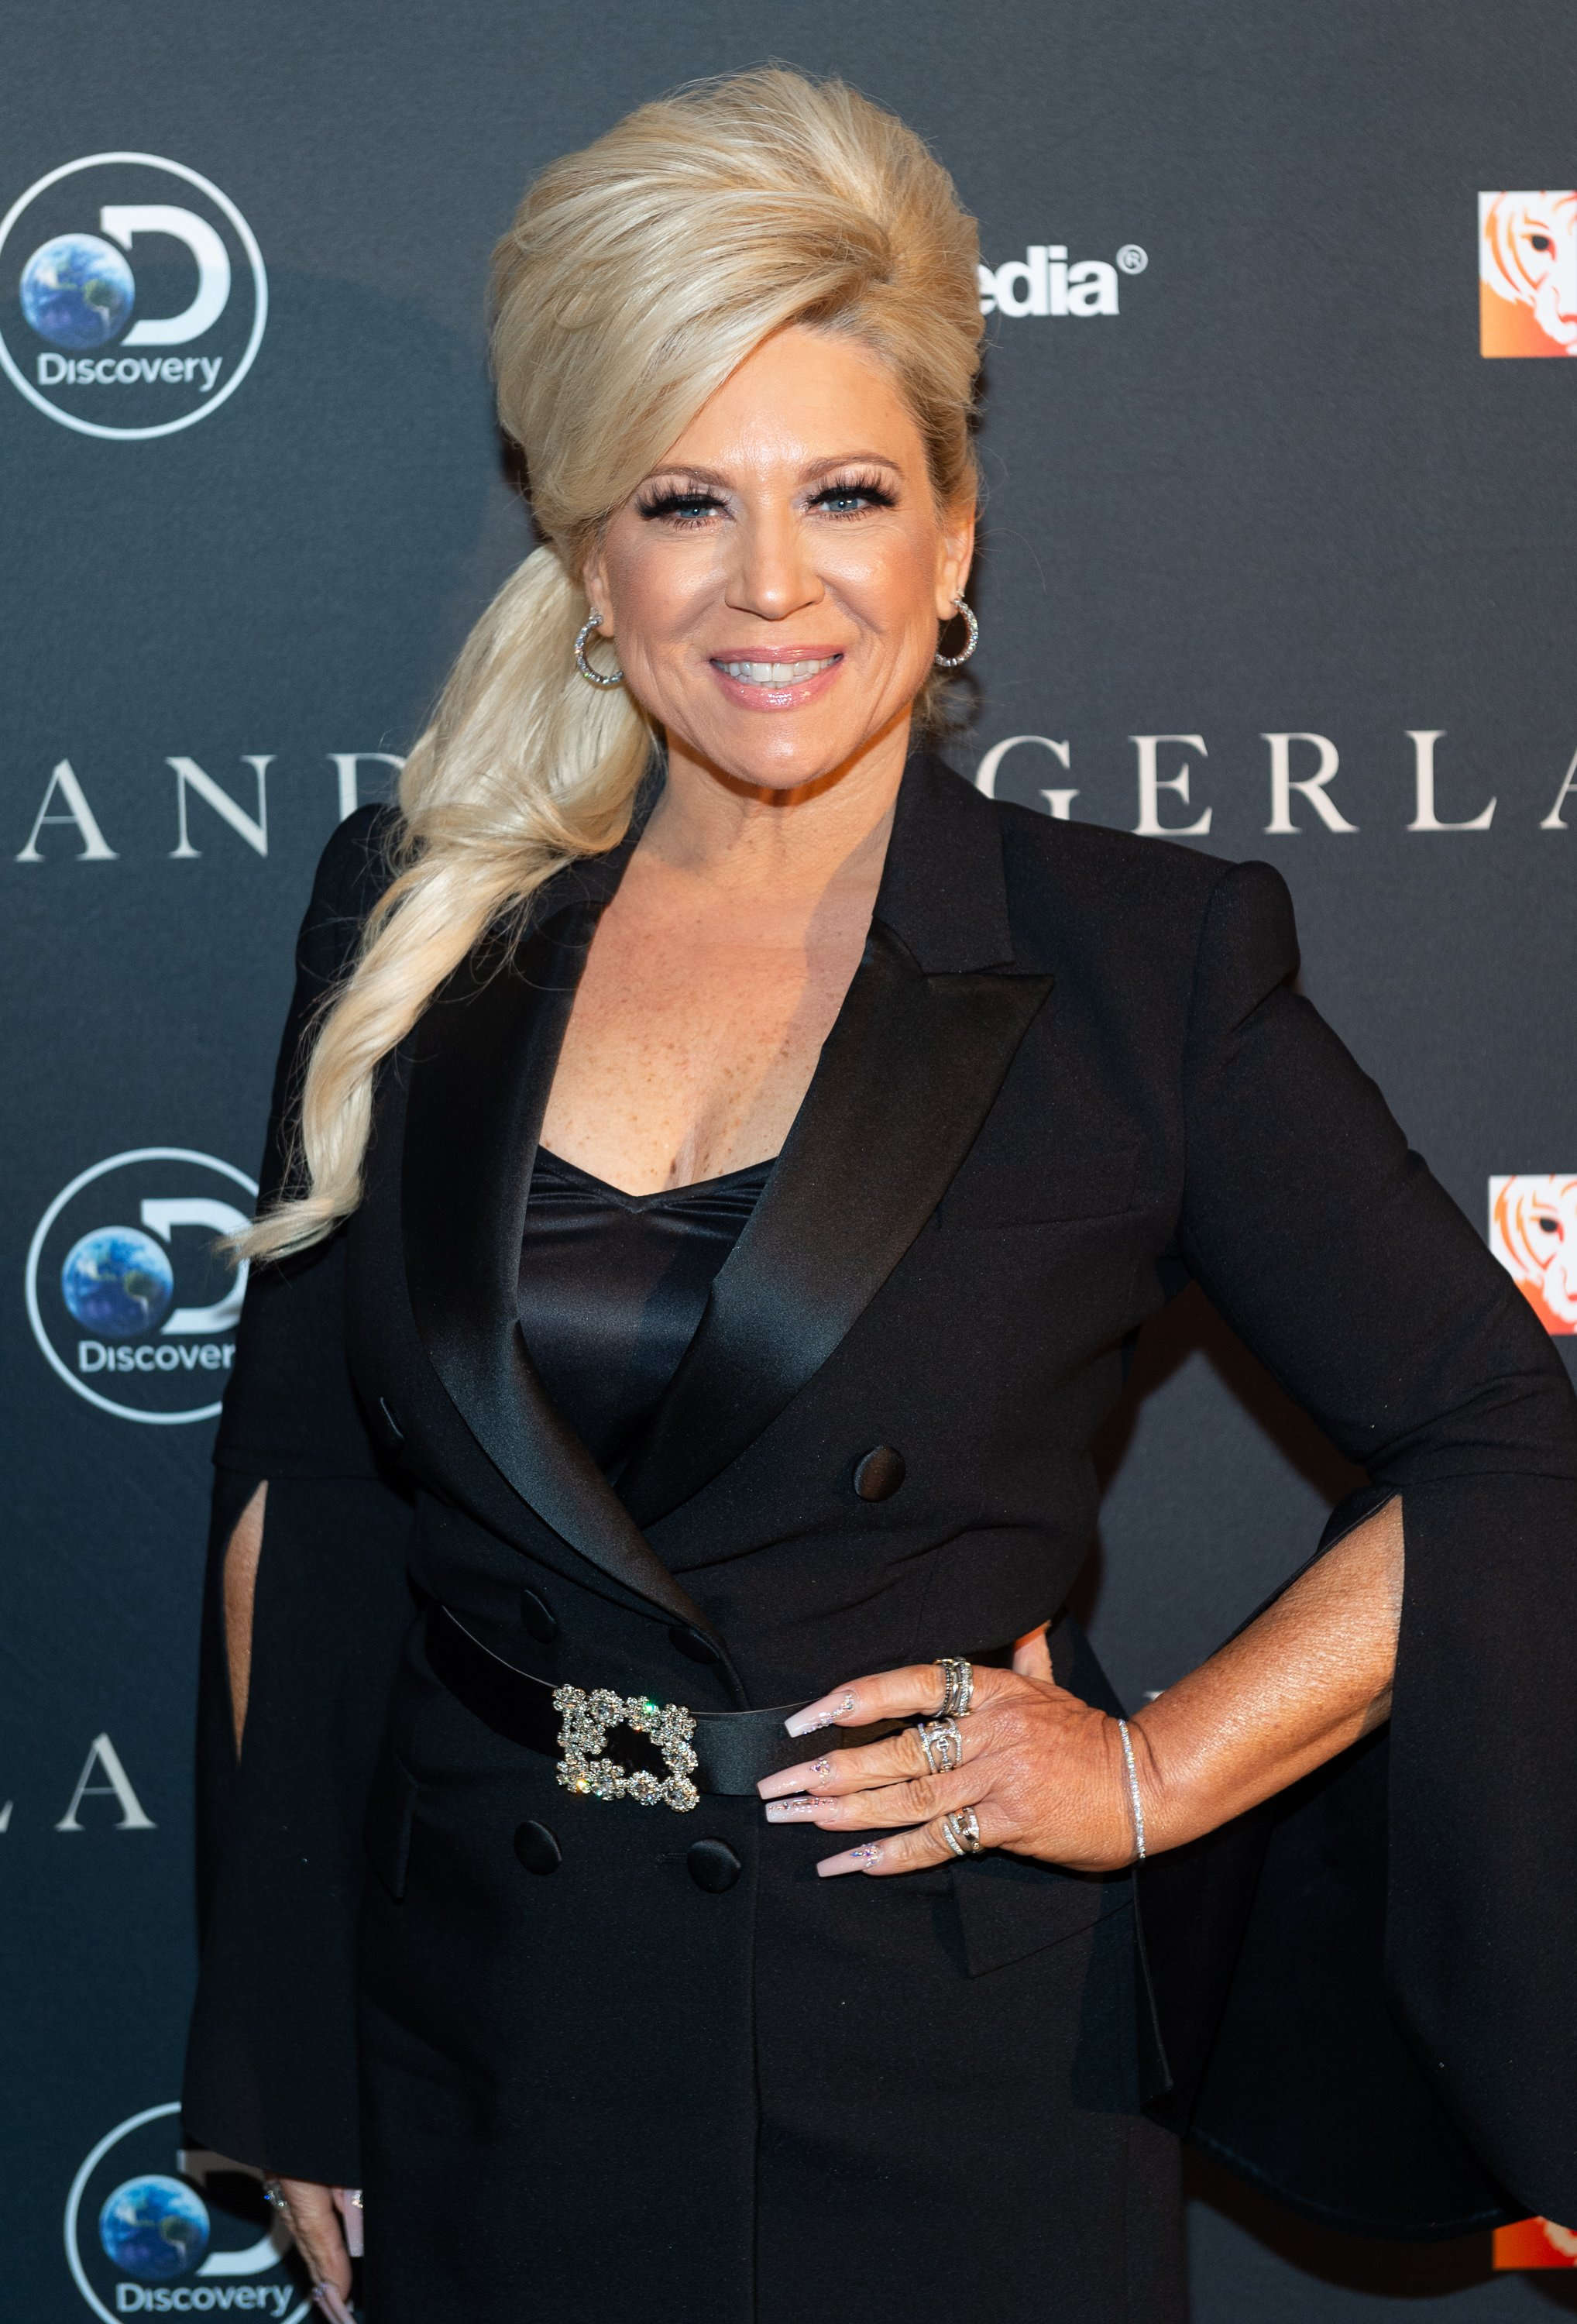 Theresa Caputo at Crosby Street Hotel on March 27, 2019 in New York City   Photo: Getty Images